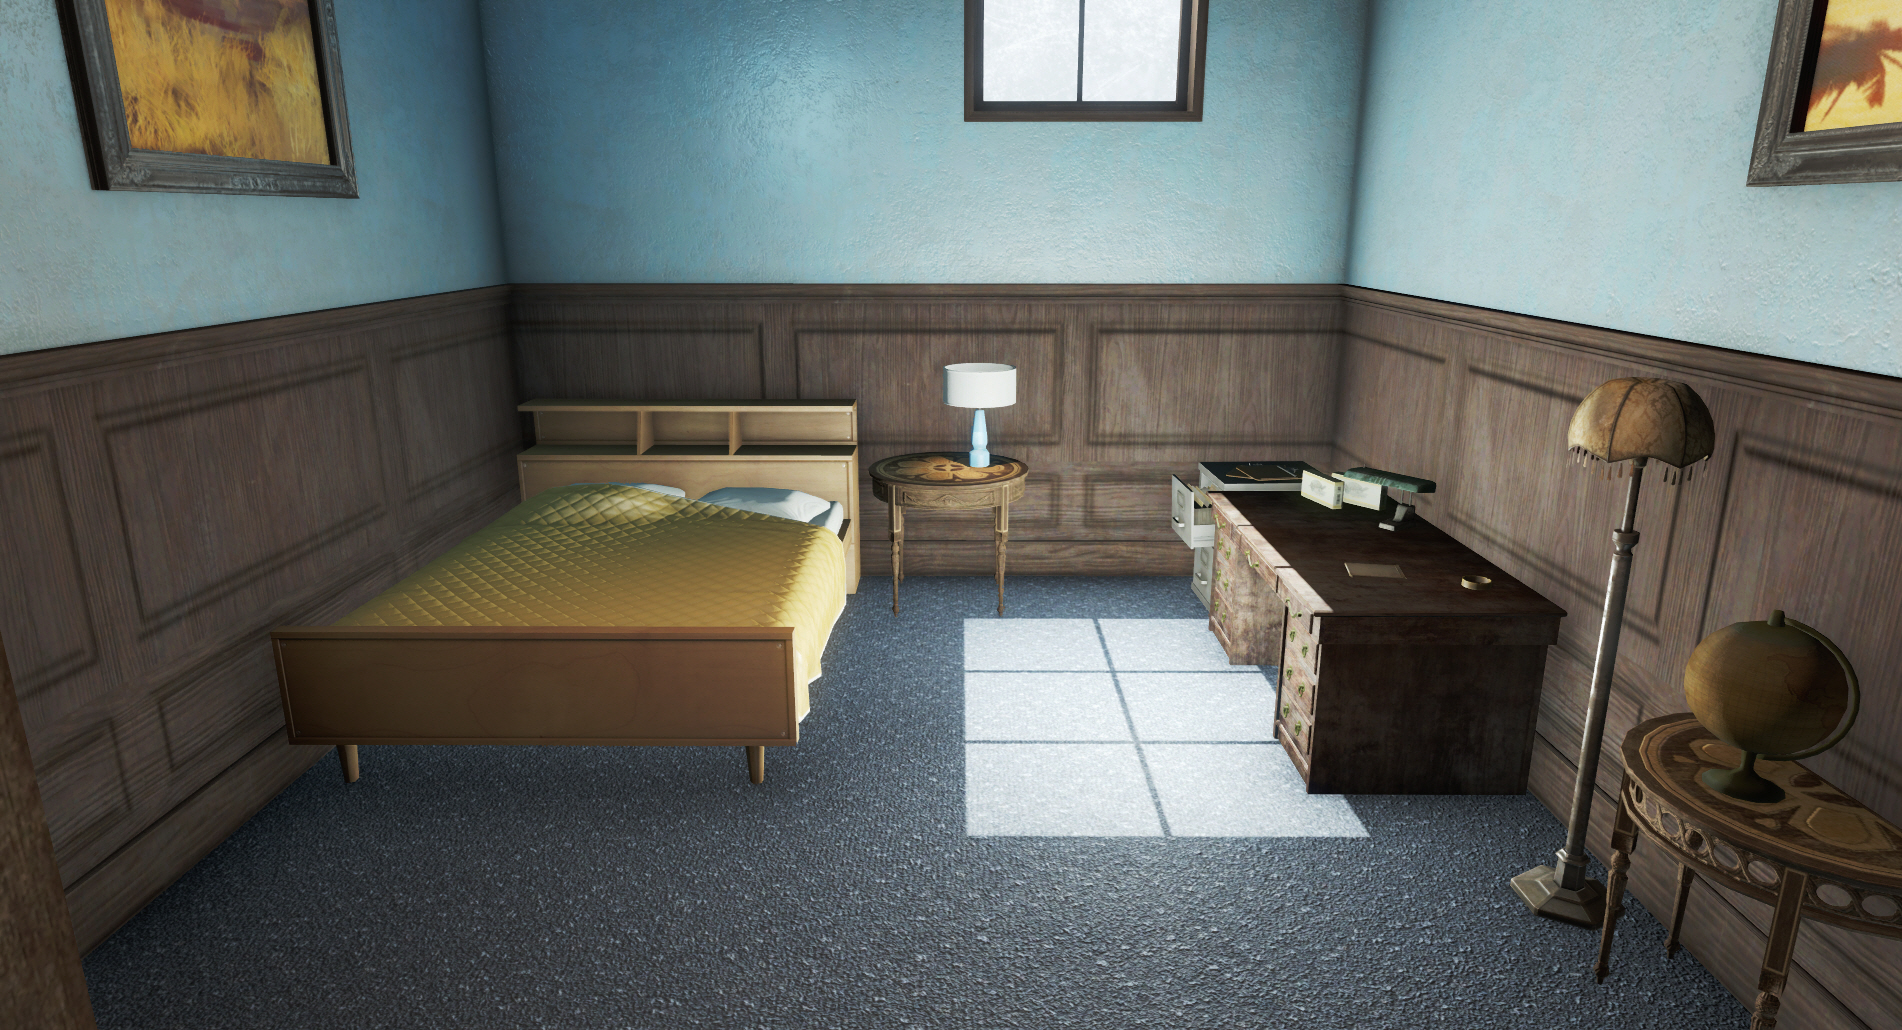 CabotHouse-Room1-Fallout4